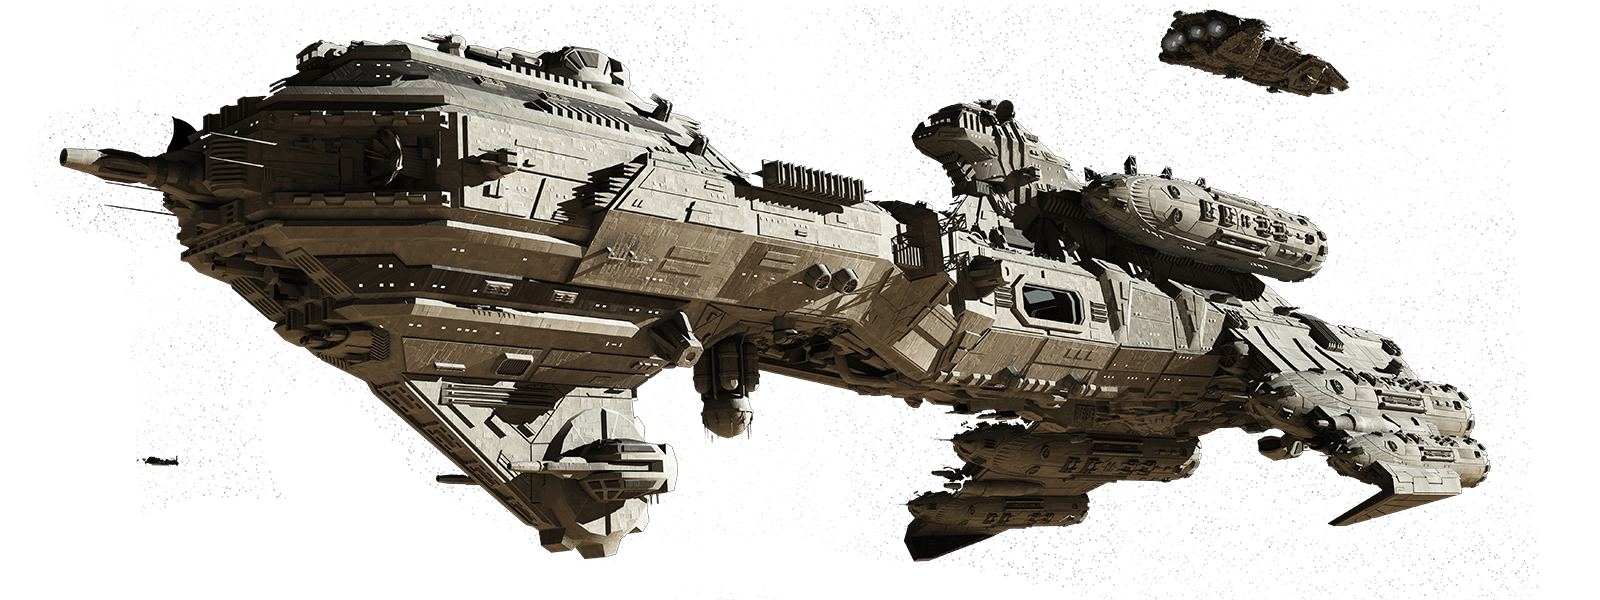 image Sci fi ship png